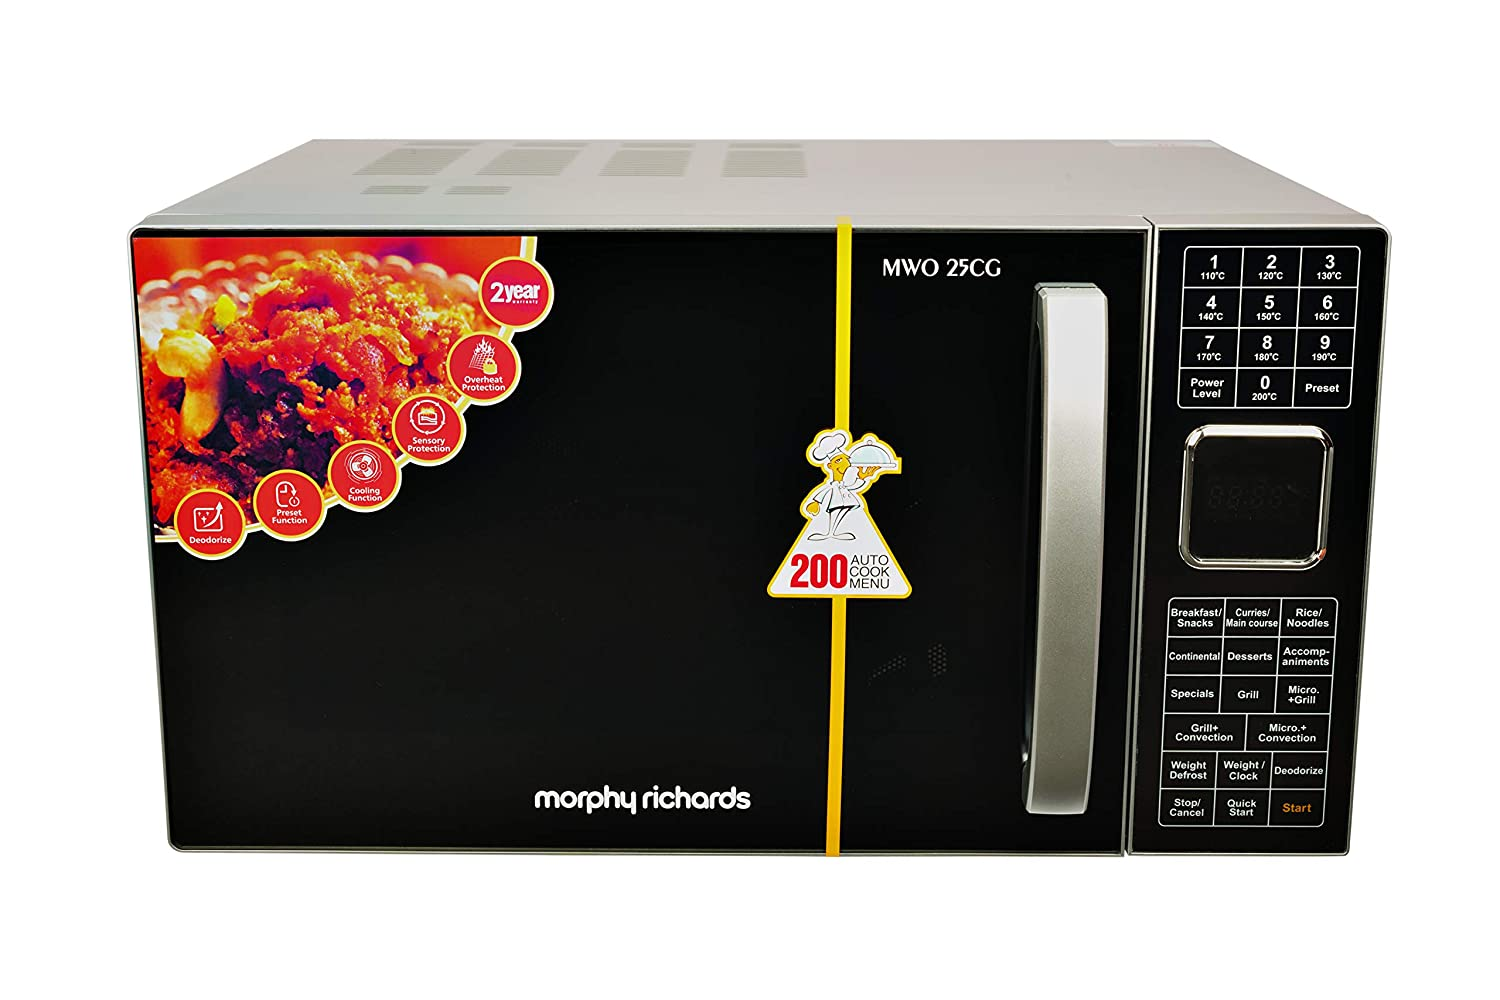 Morphy Richards Convection Microwave Oven (Silver)